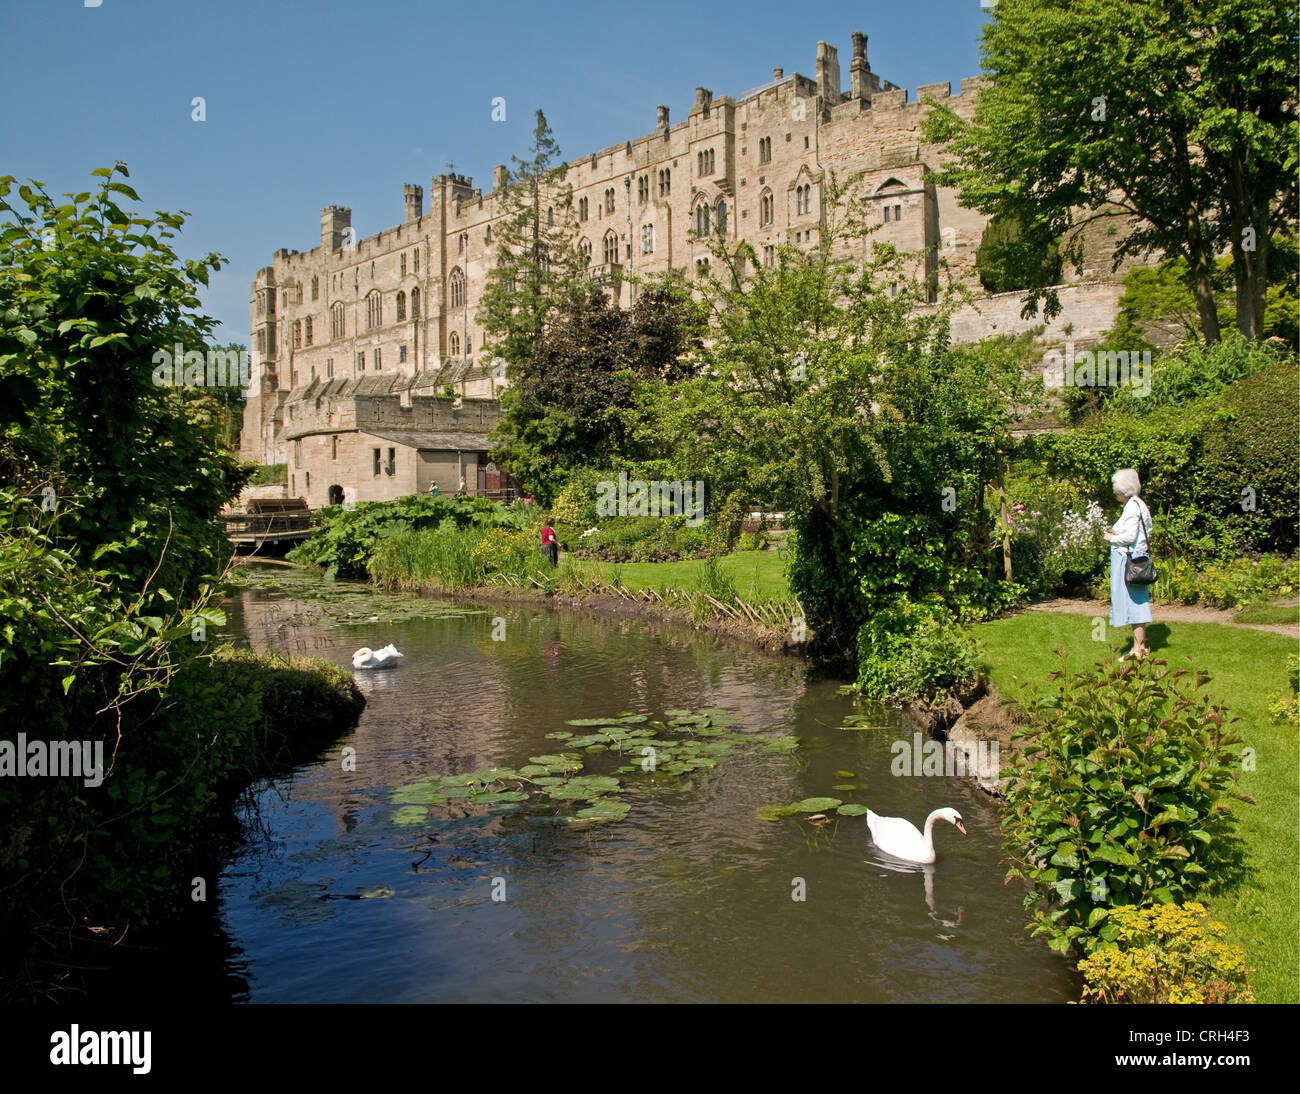 Warwick Castle with swans on the River Avon seen from a Mill Street Garden in sunshine with a blue sky Warwickshire - Stock Image